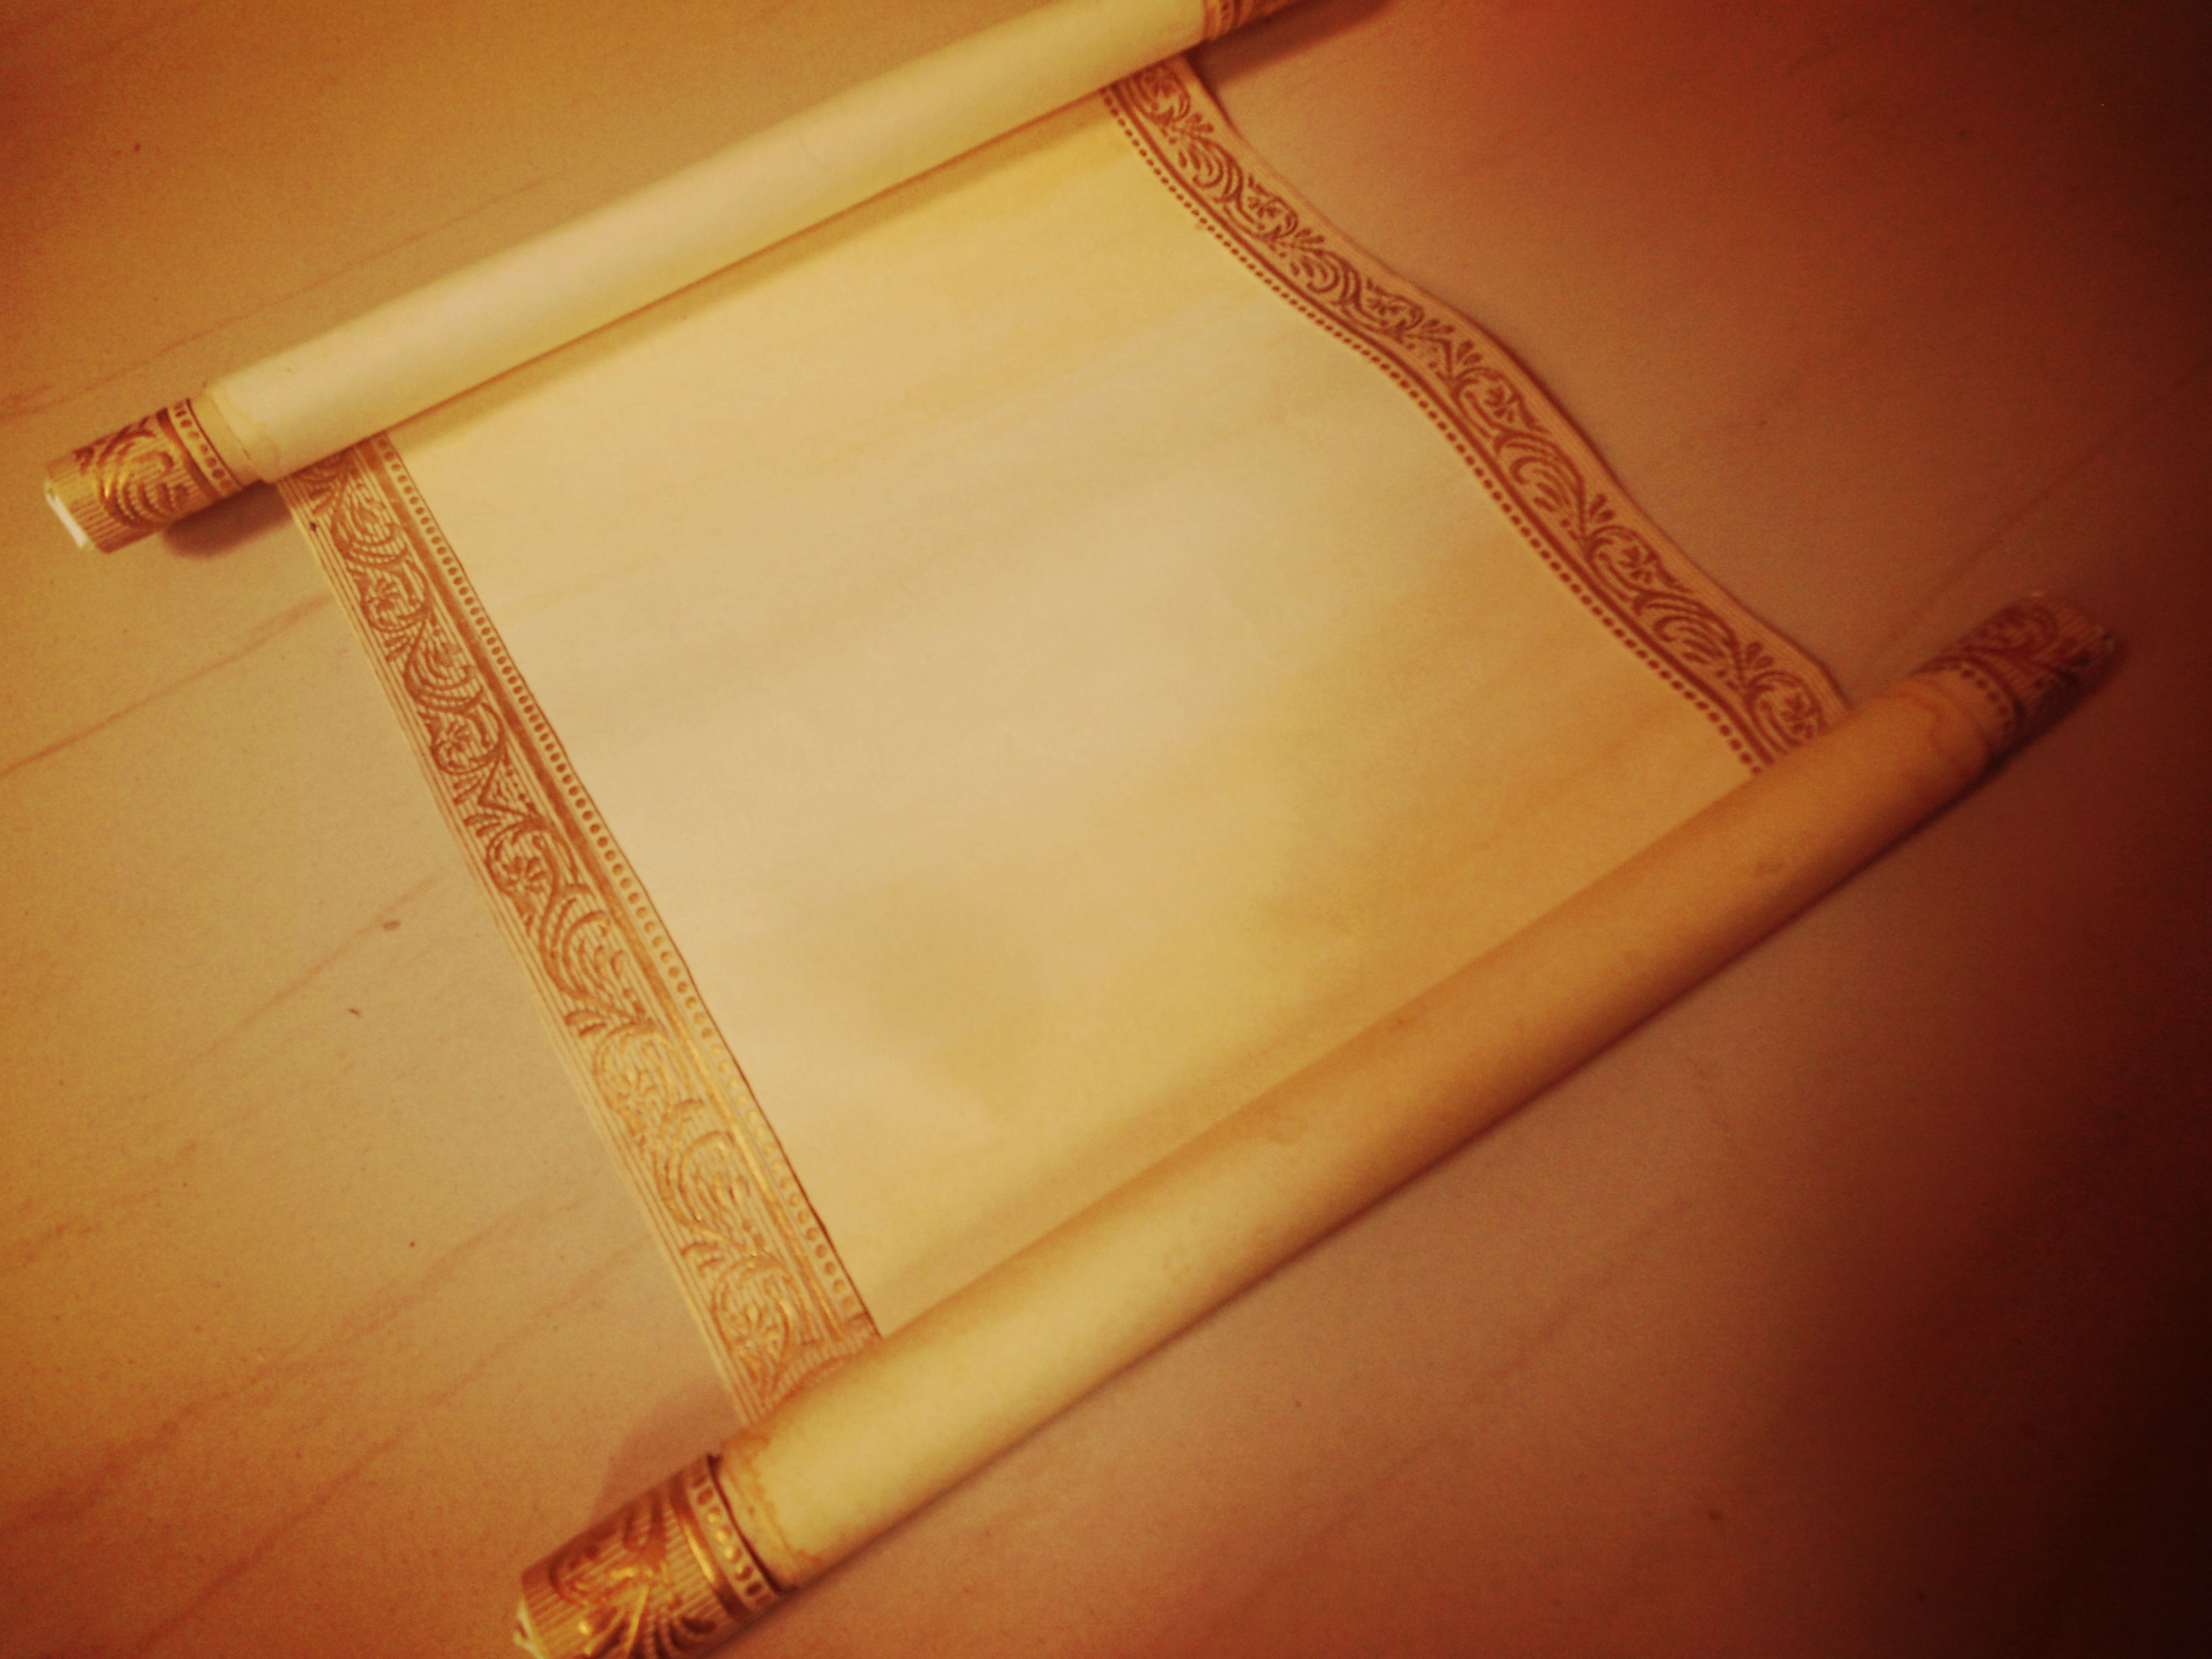 Picture of Use Glue and Attach the Attach the Paper Stick to the Top and Bottom of the Invitation Paper.